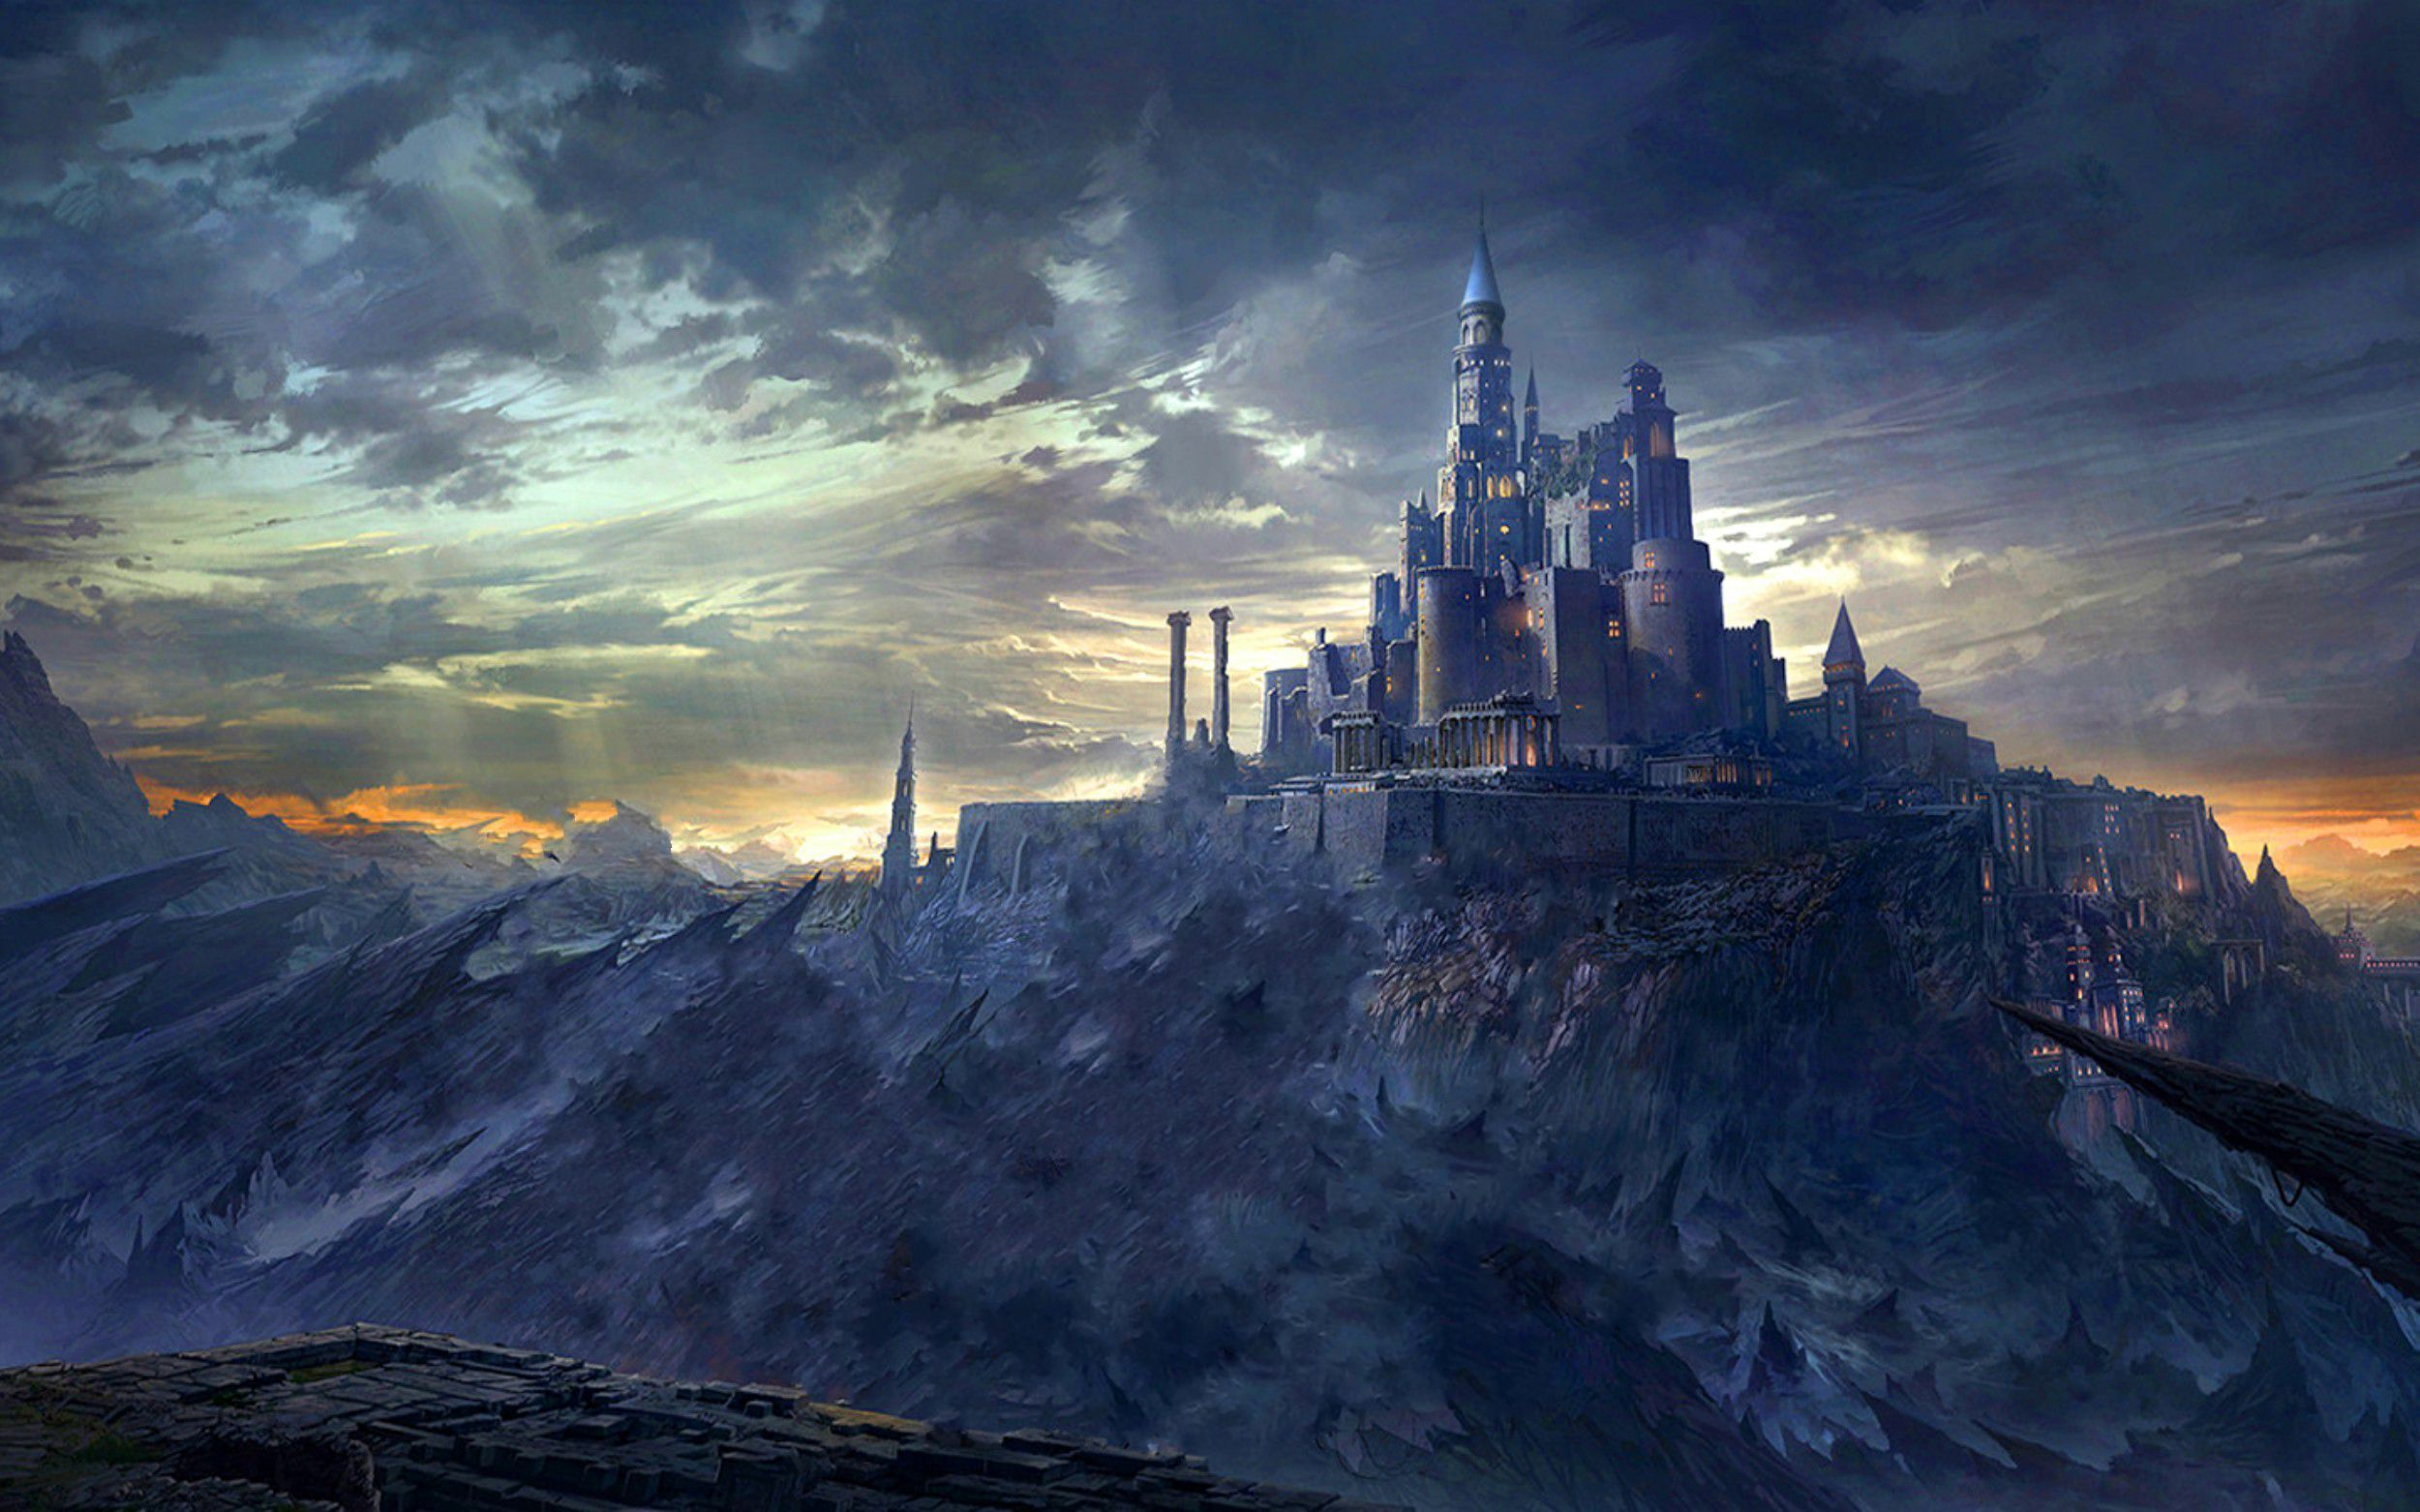 Castle On The Mountain wallpaper free | artistry ~ realms ...